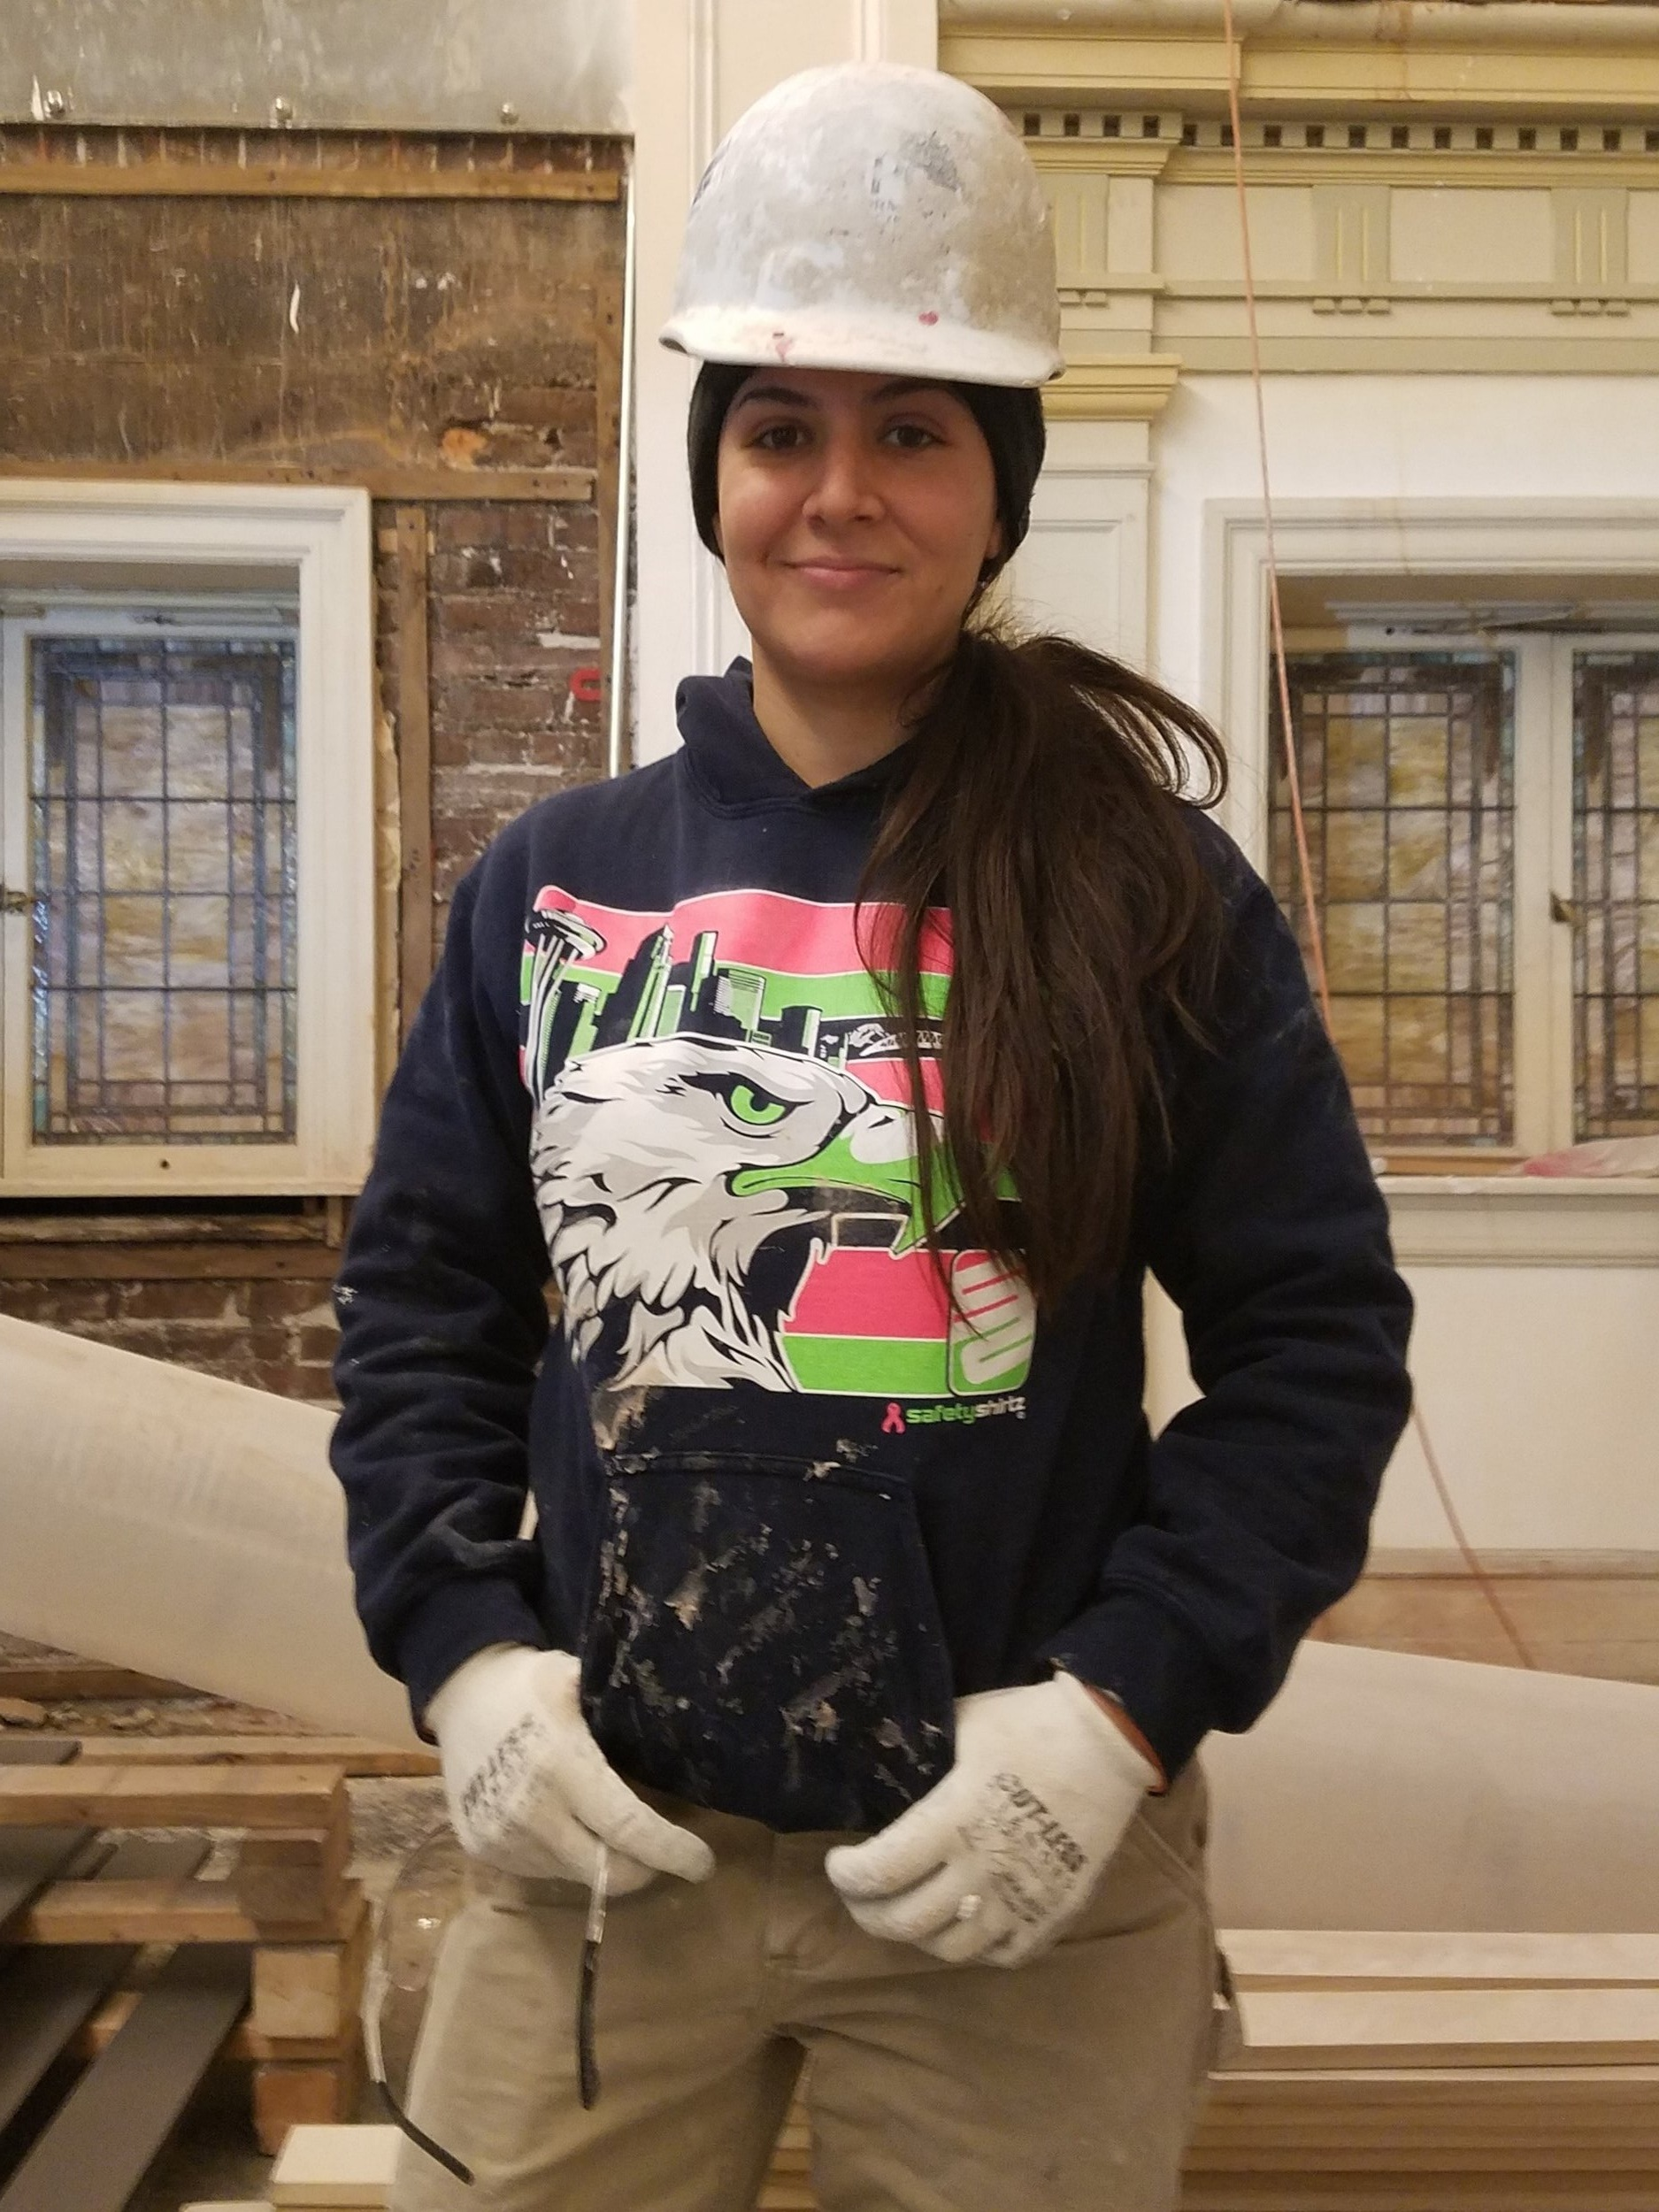 ROXANA OROZCO -PLASTERER - Roxana Orozco has been a Local 528 Plasterer since September, 2012. She was working as a server at Olive Garden and decided she wanted a job that offered variety, working outdoors and working with her hands. The waiting list for the Carpenters was too long, so she looked to the Cement Masons. Frank Benish directed her to the Plasterers for better job opportunities at the time. She loves the ornate aspects of being a Plasterer and has become very well rounded working at PCI. She worked on the King Street Station, the Space Needle and is currently working on the retrofit of the Seattle Town hall building.Roxana loves working out, backpacking, cooking and she is an avid reader.She has recently become engaged and will be getting married this August. Roxana and her fiance are looking forward to starting a family.